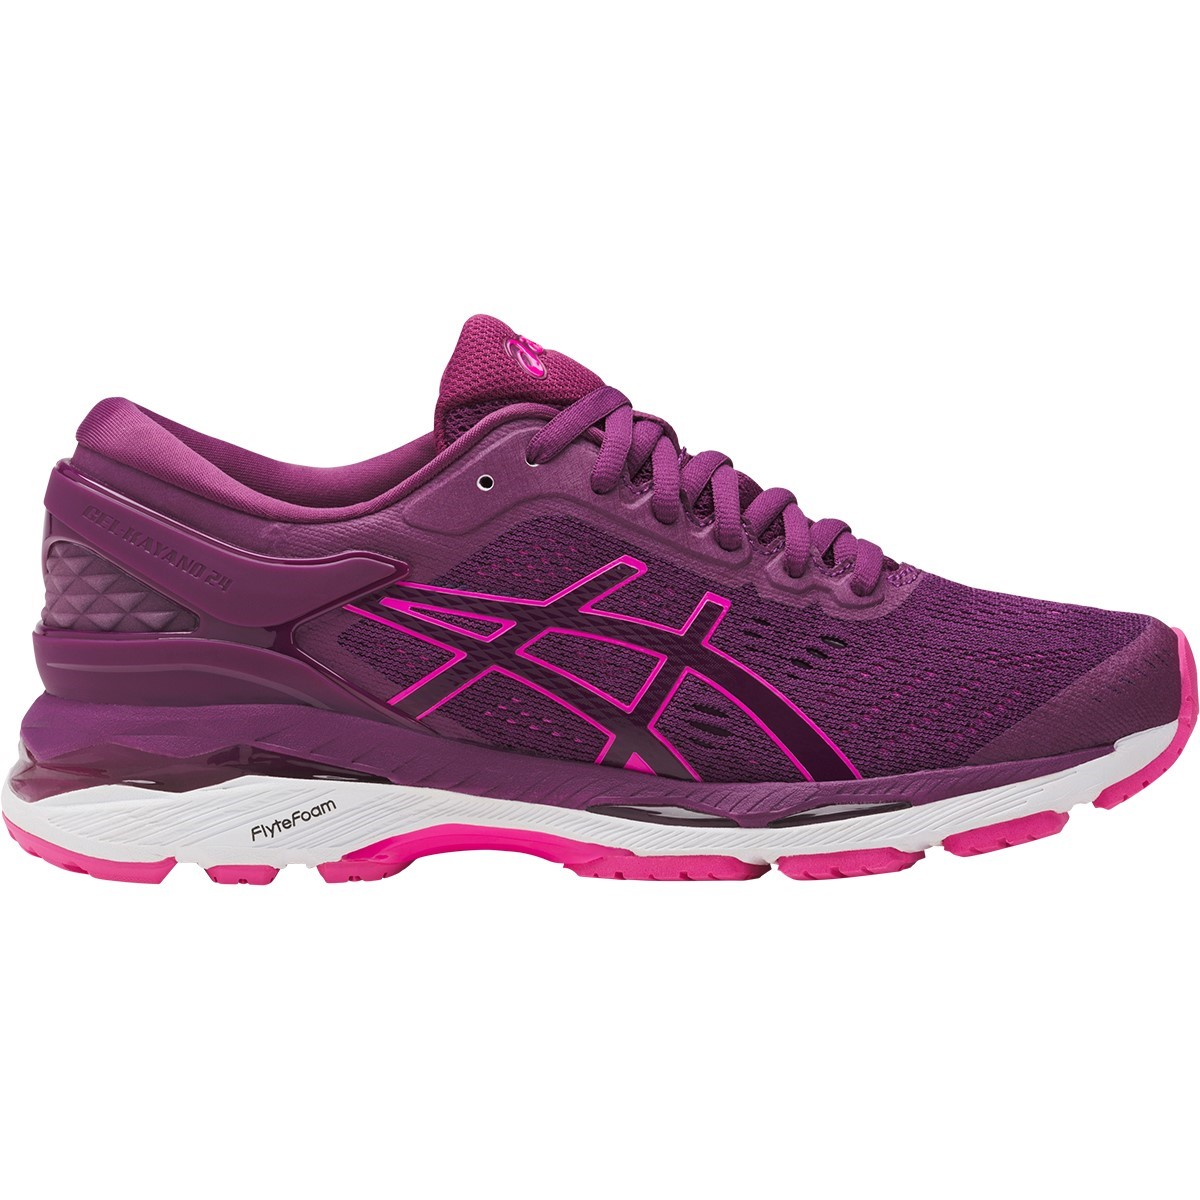 Asics GT-2000 6 Running Shoe Review vs Asics Gel Kayano 24 ... c77378c20